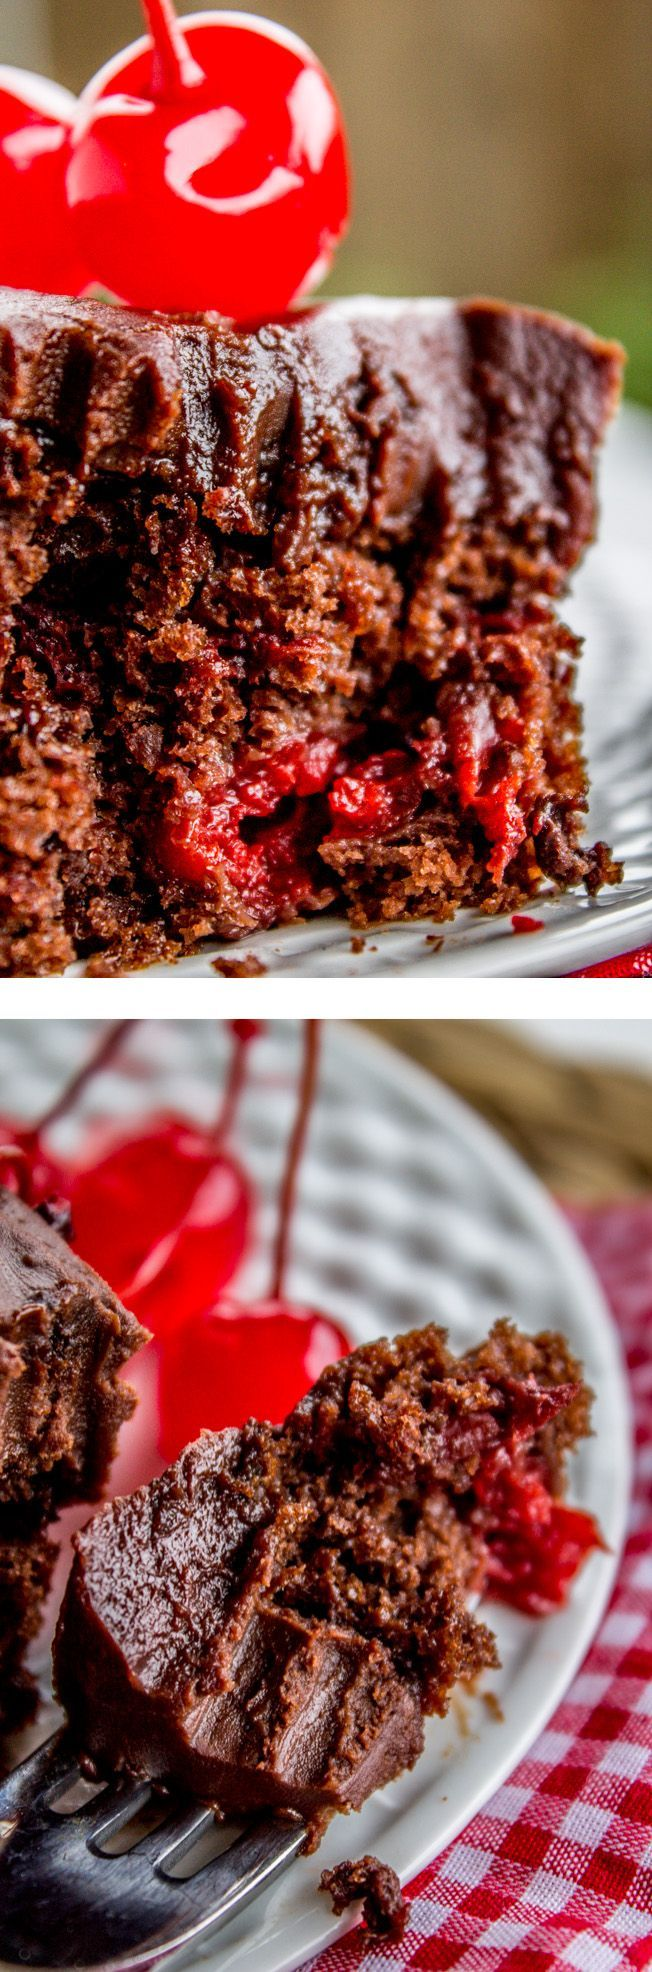 Chocolate Cherry Sheet Cake with Fudge Frosting